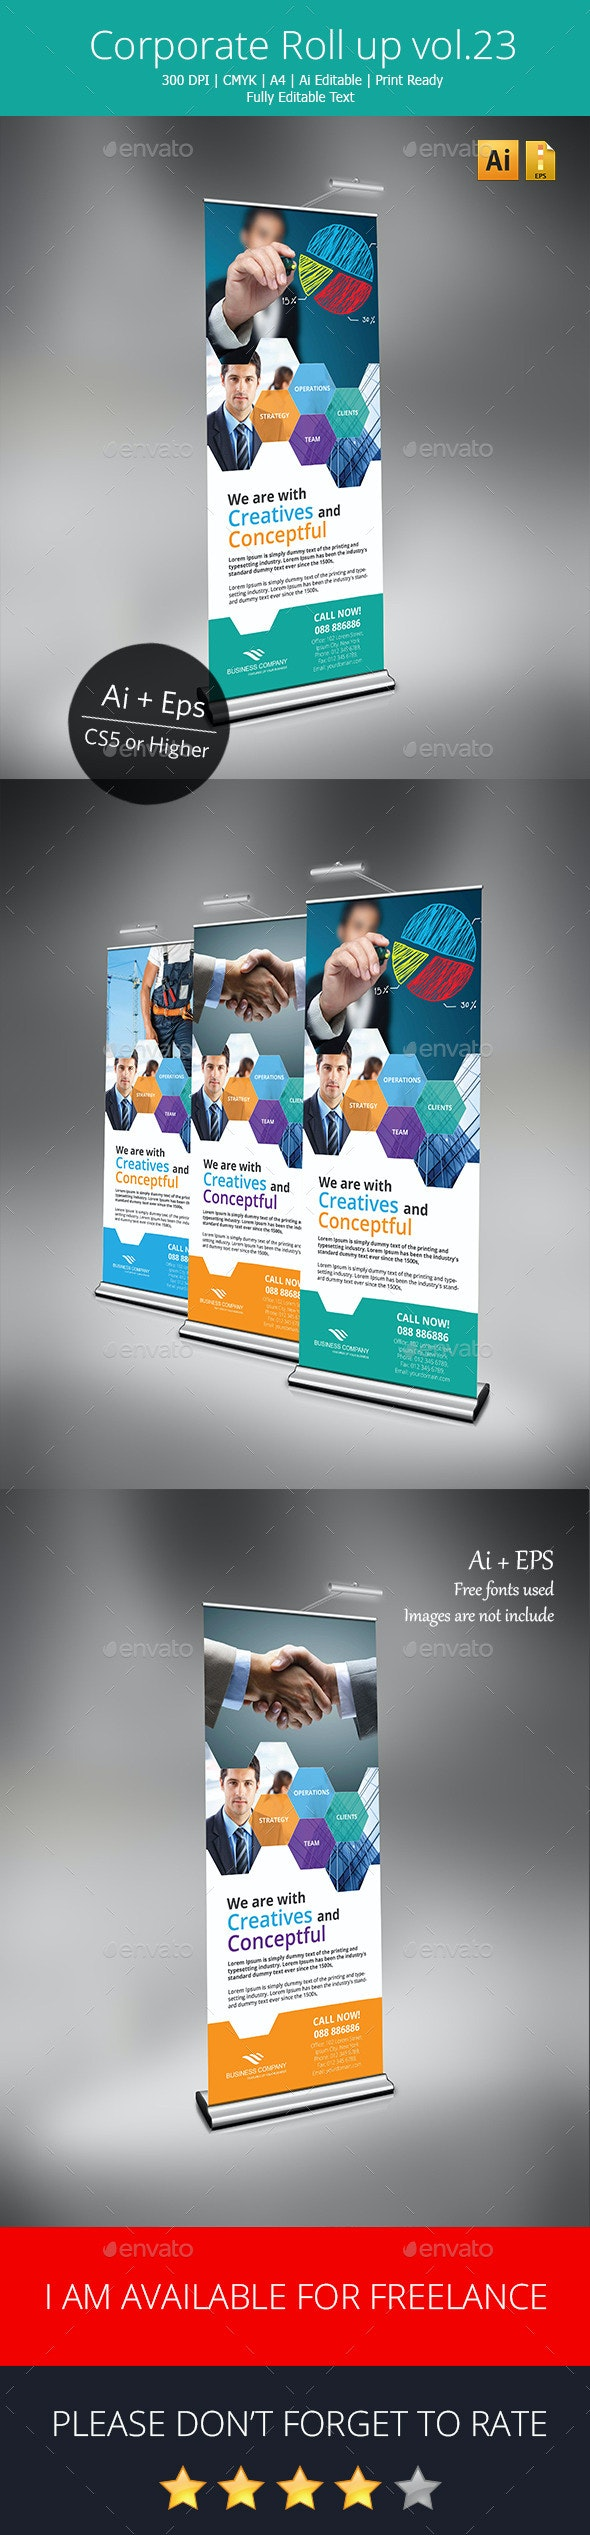 Corporate Rollup banner vol.23 - Signage Print Templates